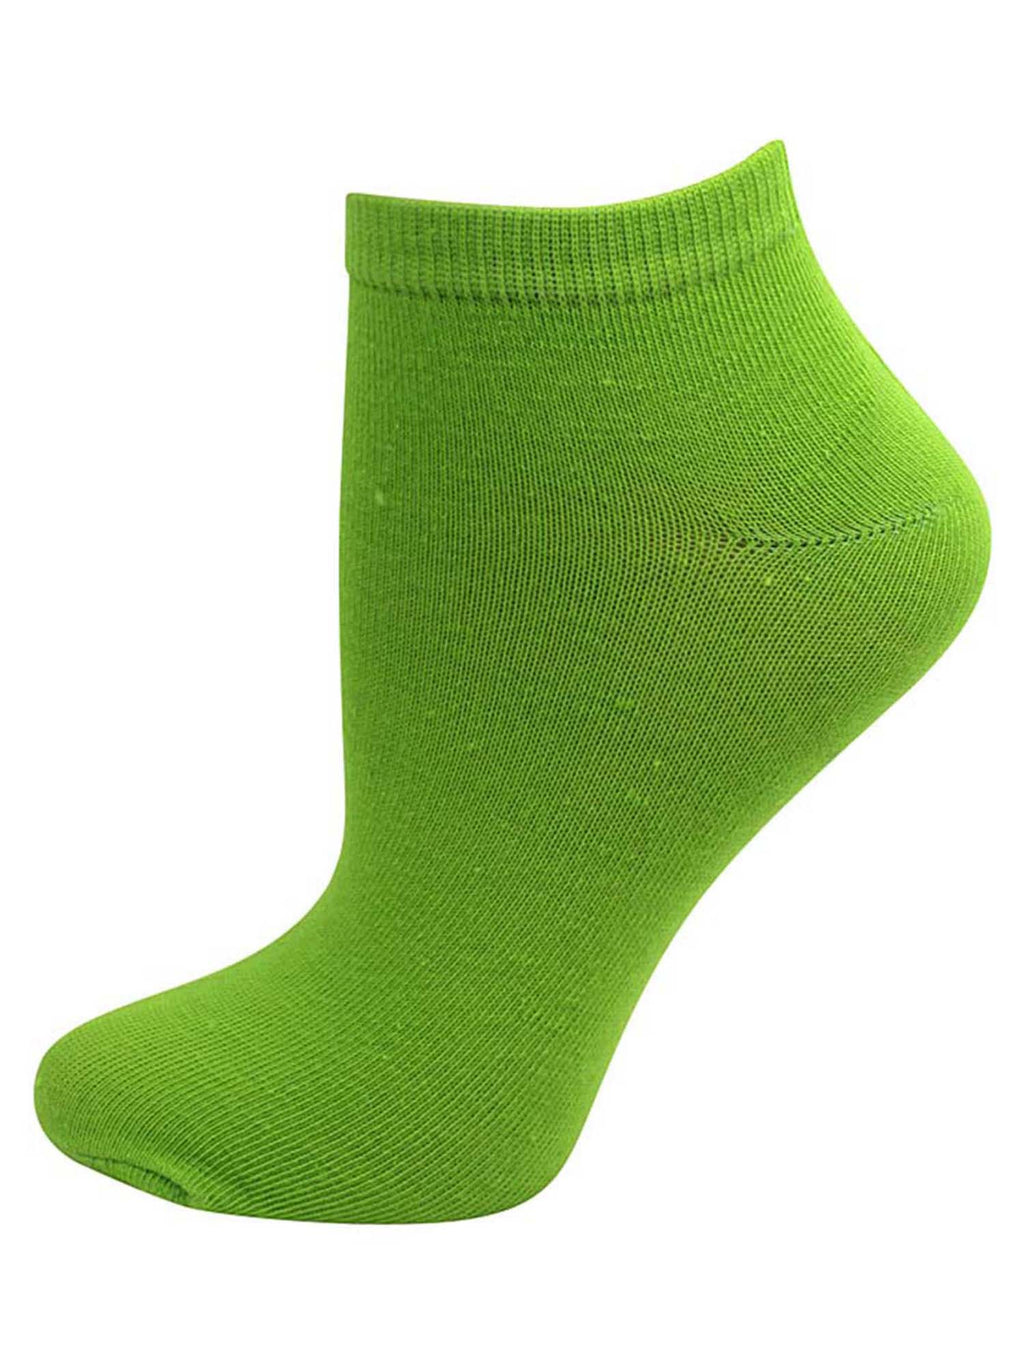 Solid Light Color Assorted 6-Pack Ladies Ankle Socks